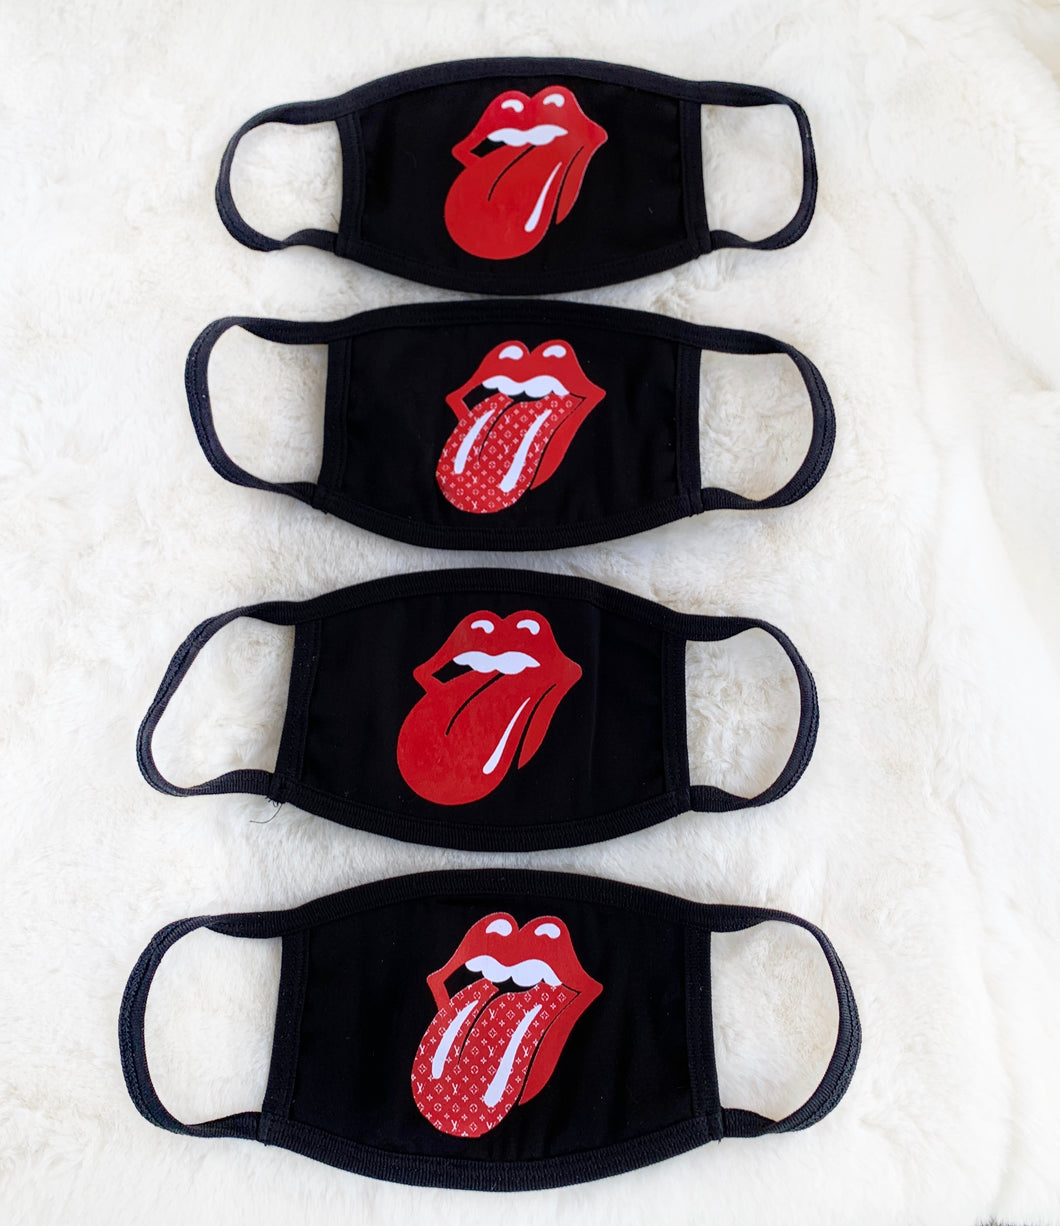 4 PACK - Rolling Stones x LV Lips Tongue Reversible Unisex Face Mask